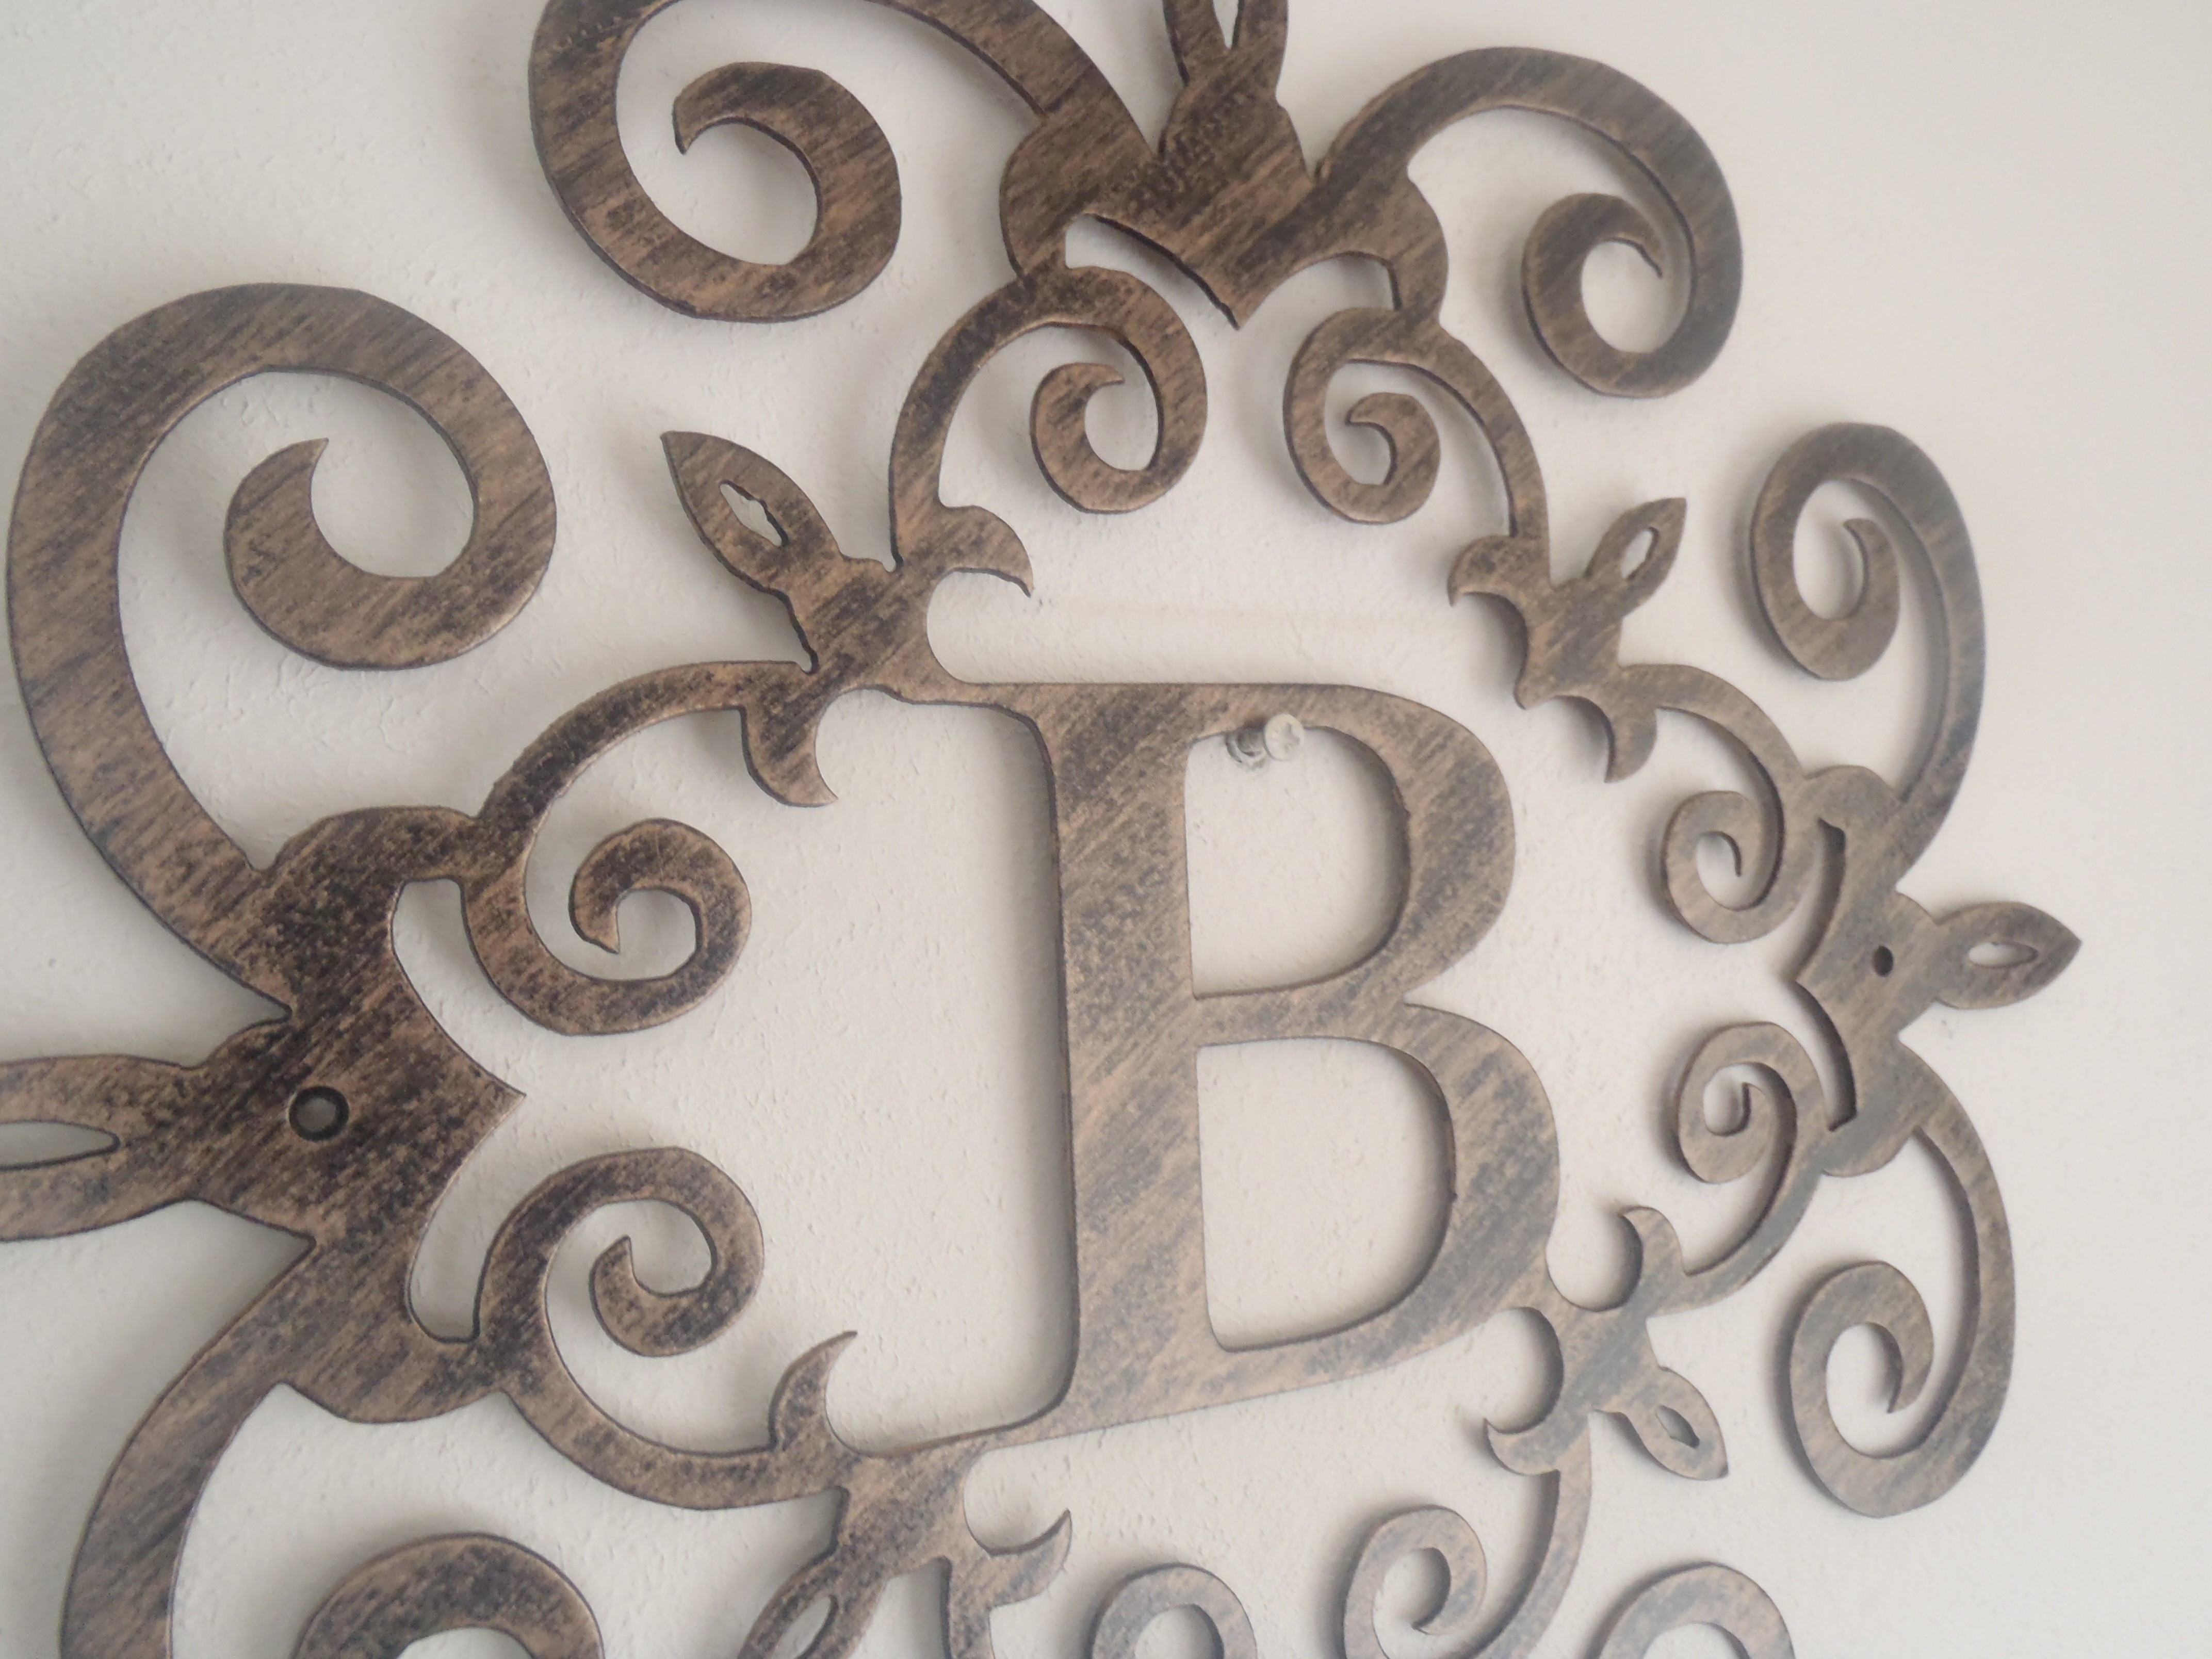 Metal Initial Letters Inspiration Of Monogram Wall Art | Wall Art For Recent Metal Letter Wall Art (View 11 of 20)